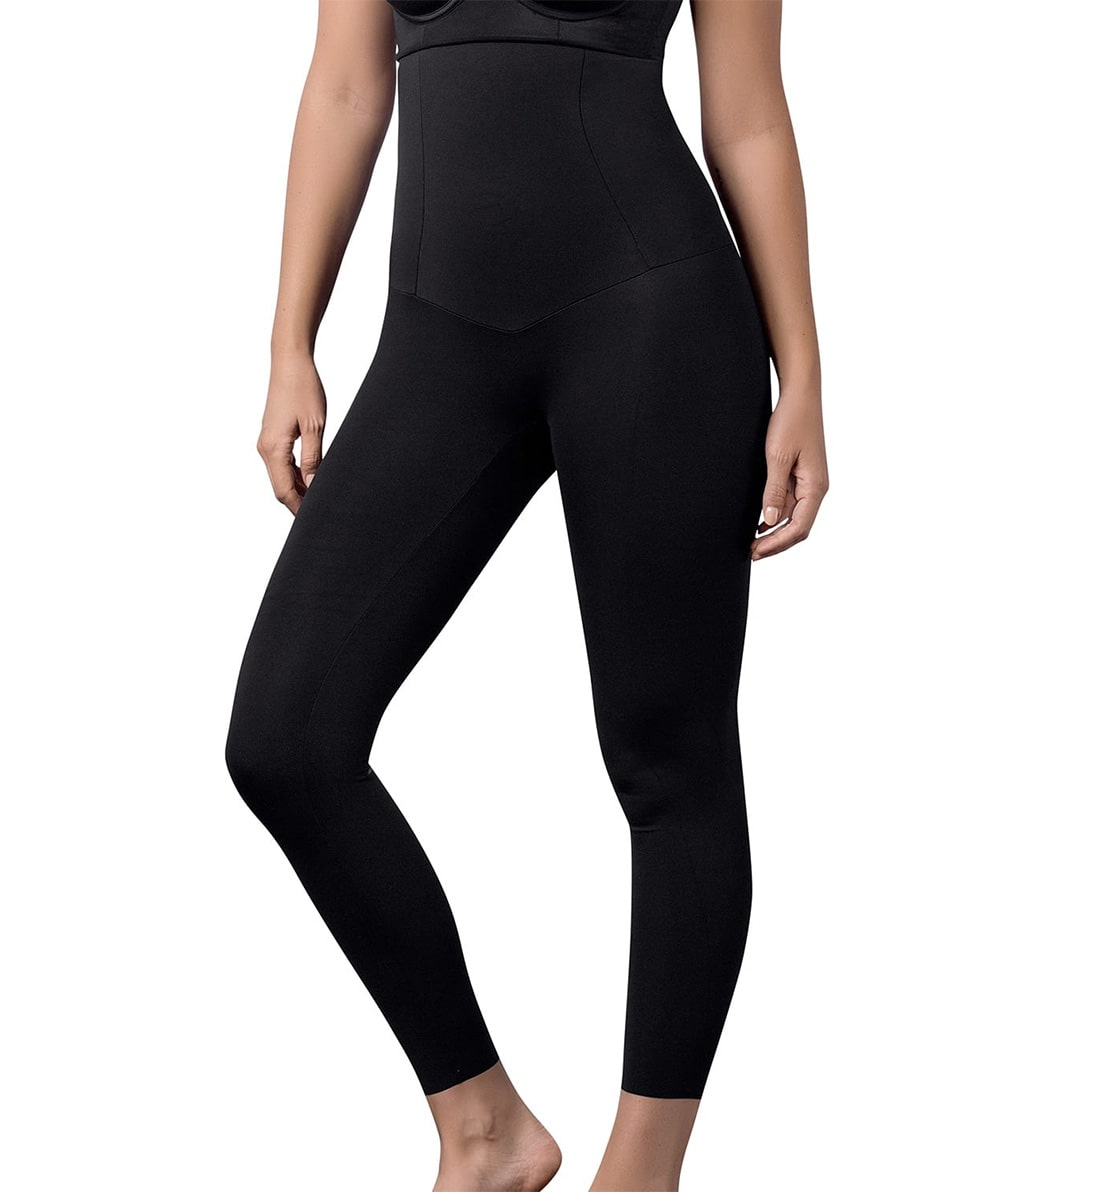 Leonisa Extra High Waisted Firm Compression Legging 012901 Breakout Bras